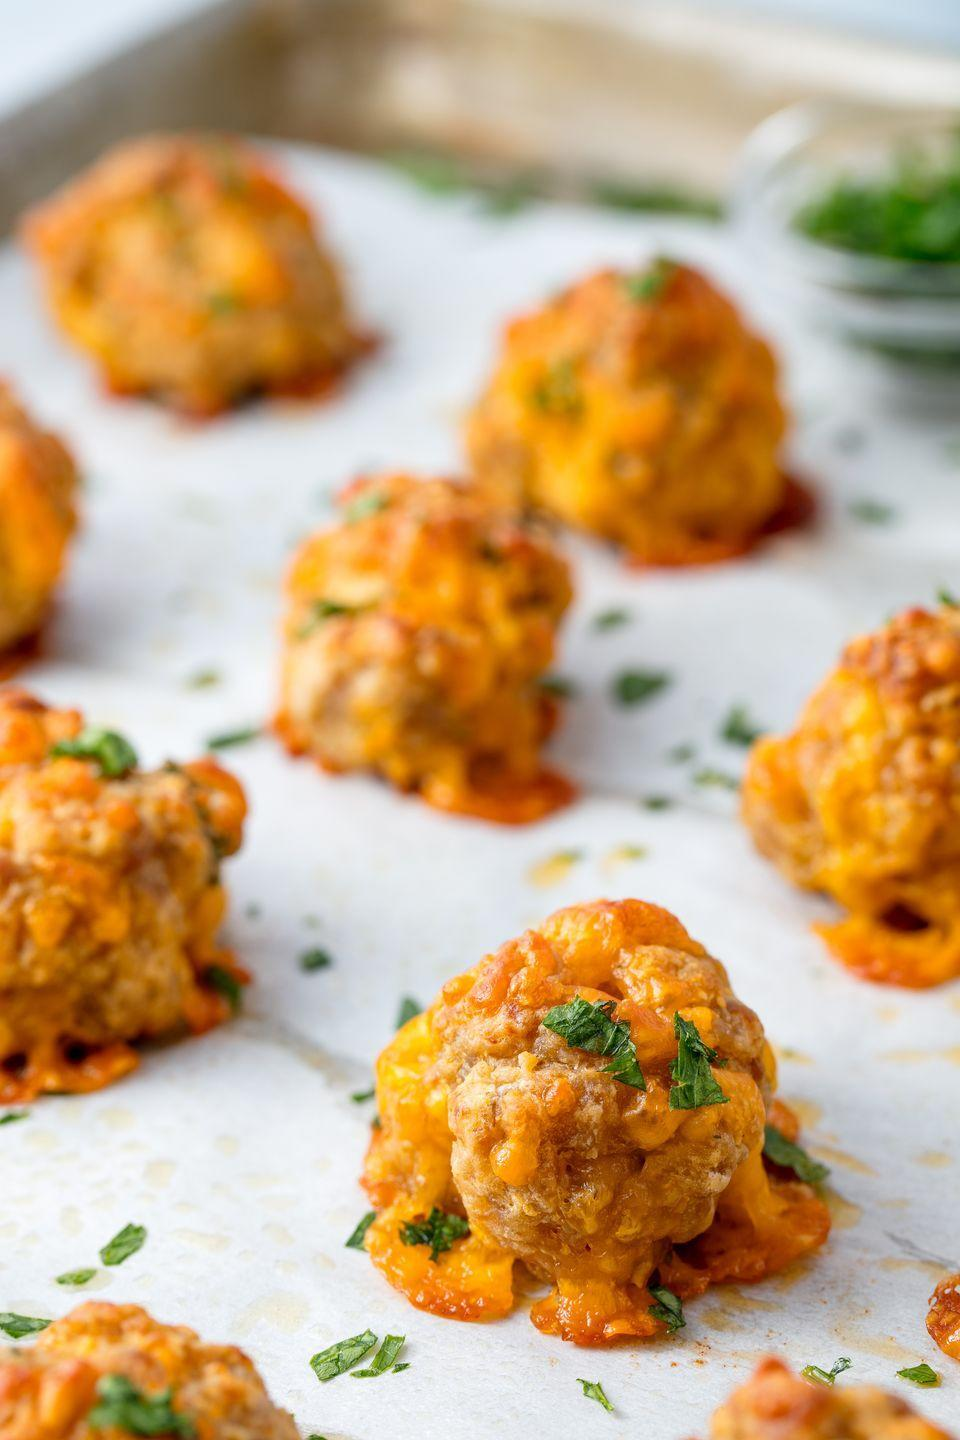 "<p>Addictive bites of cooked pork sausage, cheddar, and Bisquick. </p><p>Get the recipe from <a href=""https://www.delish.com/cooking/recipe-ideas/recipes/a54969/sausage-balls-recipe/"" rel=""nofollow noopener"" target=""_blank"" data-ylk=""slk:Delish"" class=""link rapid-noclick-resp"">Delish</a>. </p>"